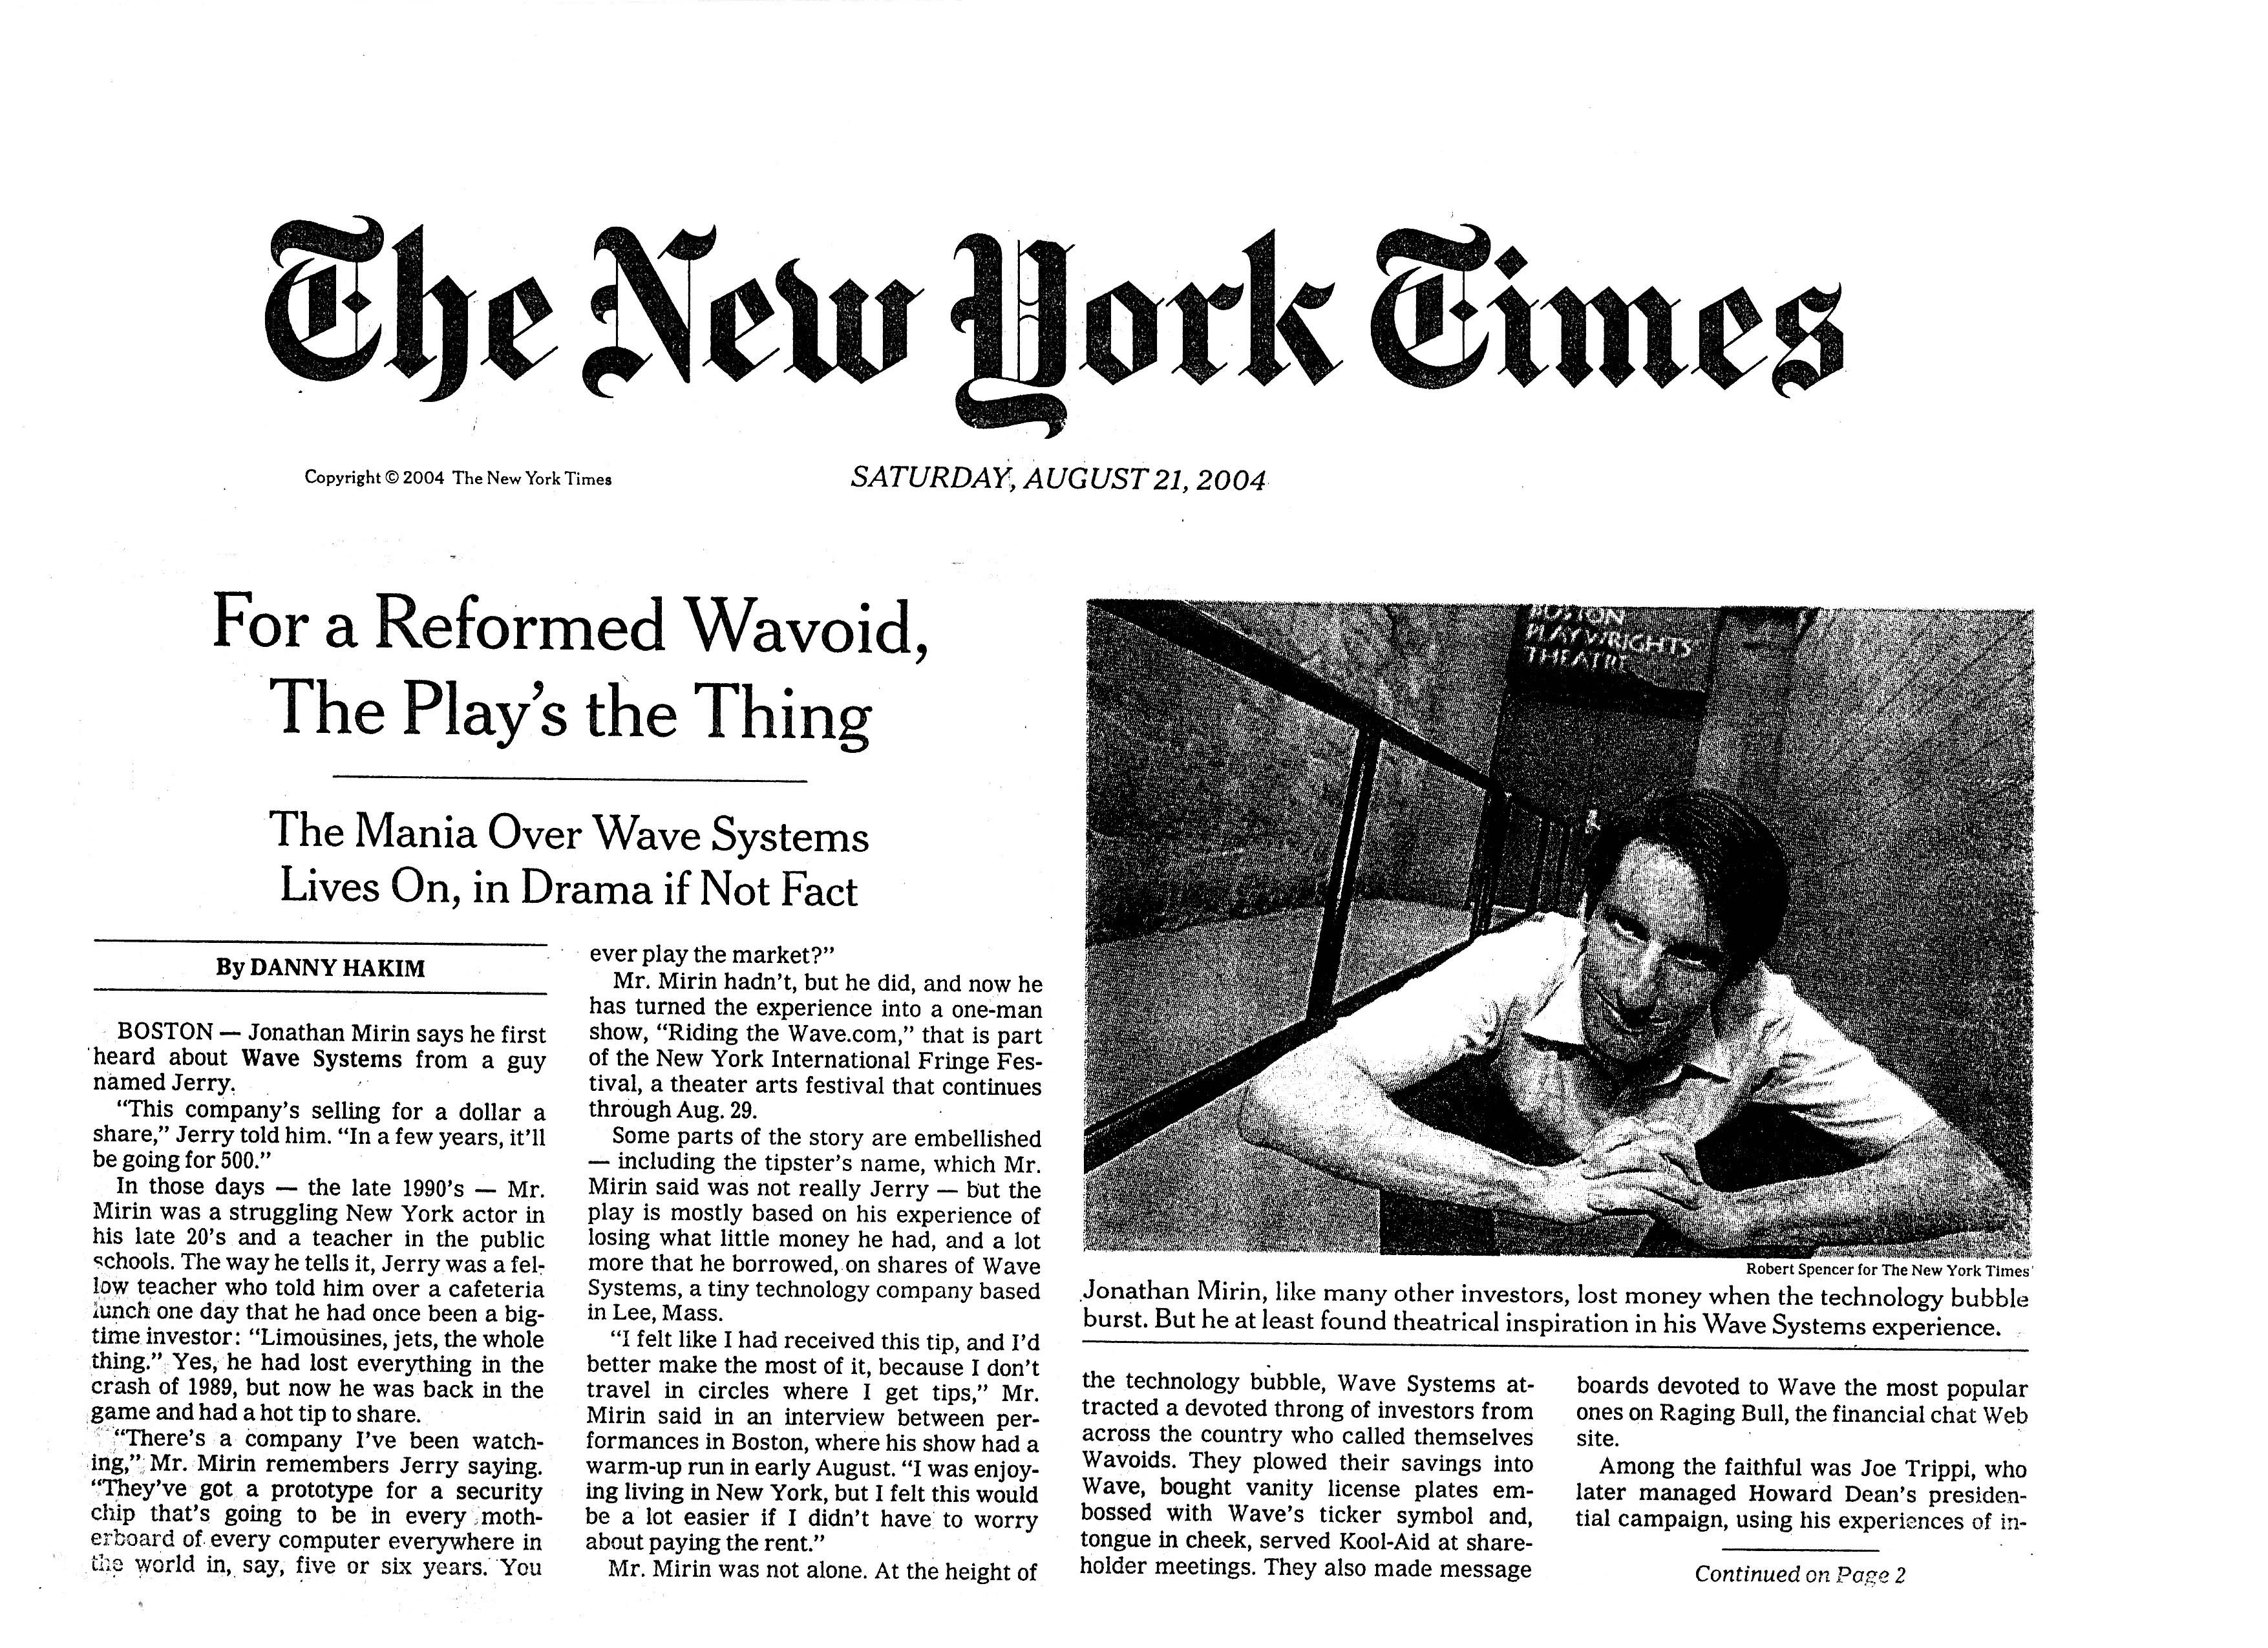 Riding the Wave in the NYT.8.04